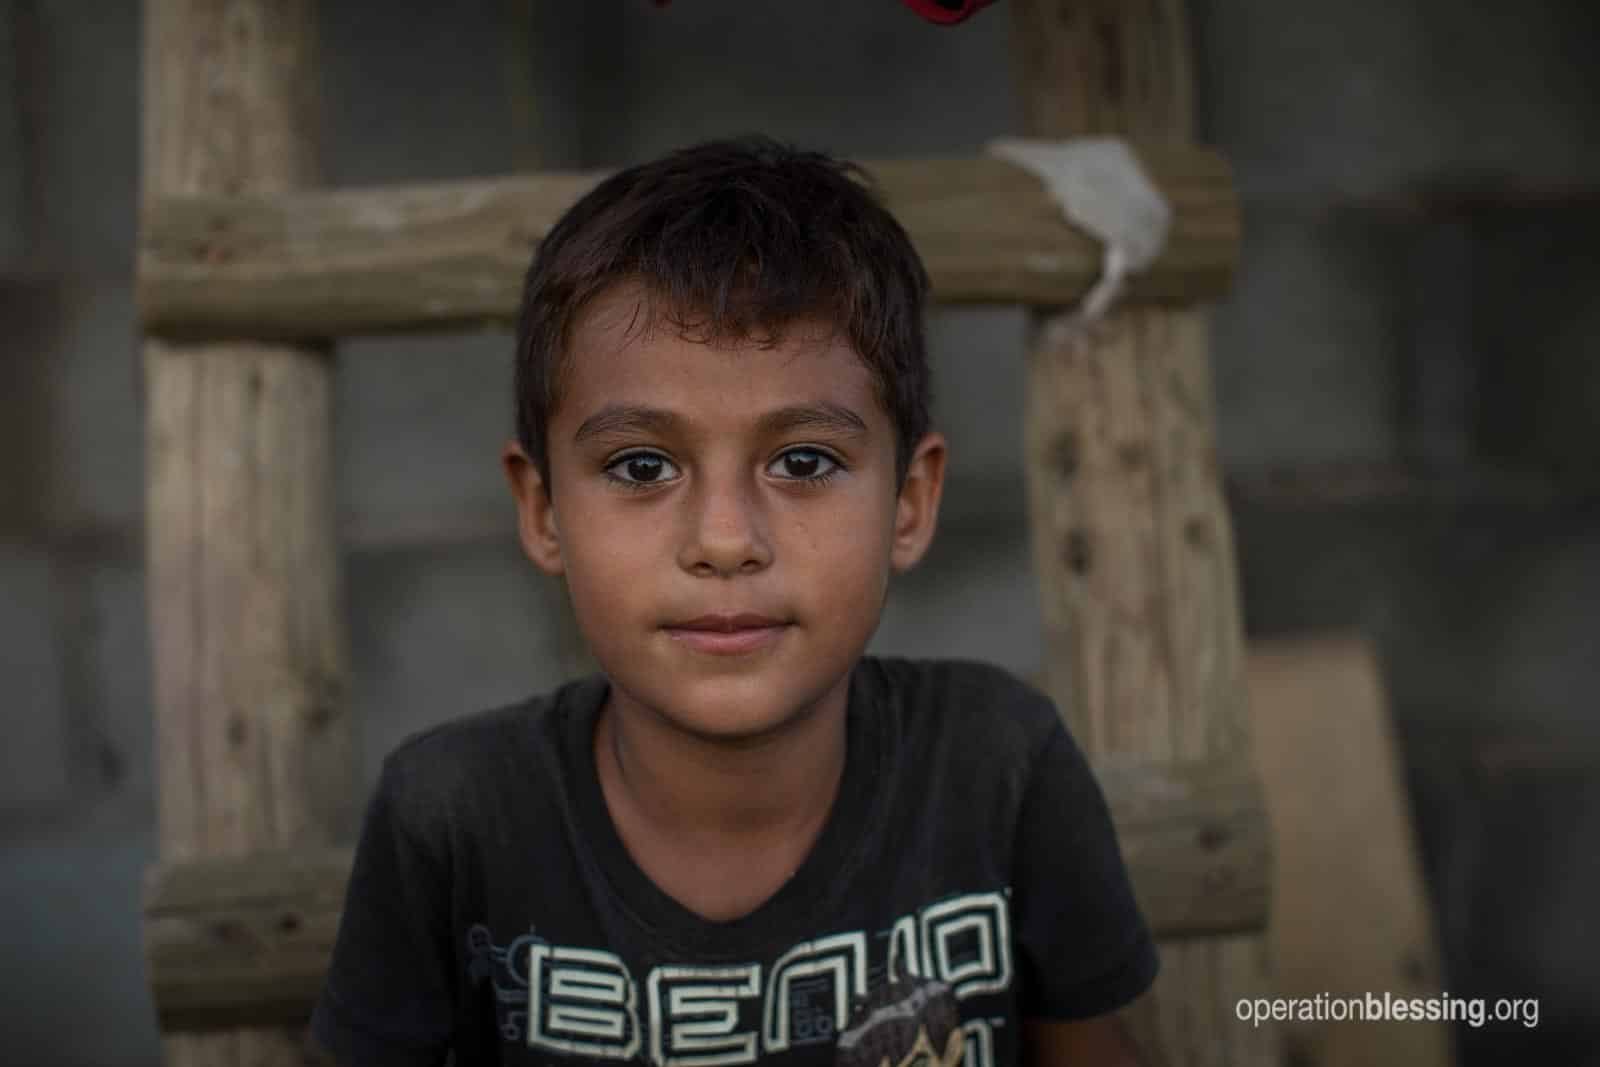 This boy was affected by floods in Mexico.